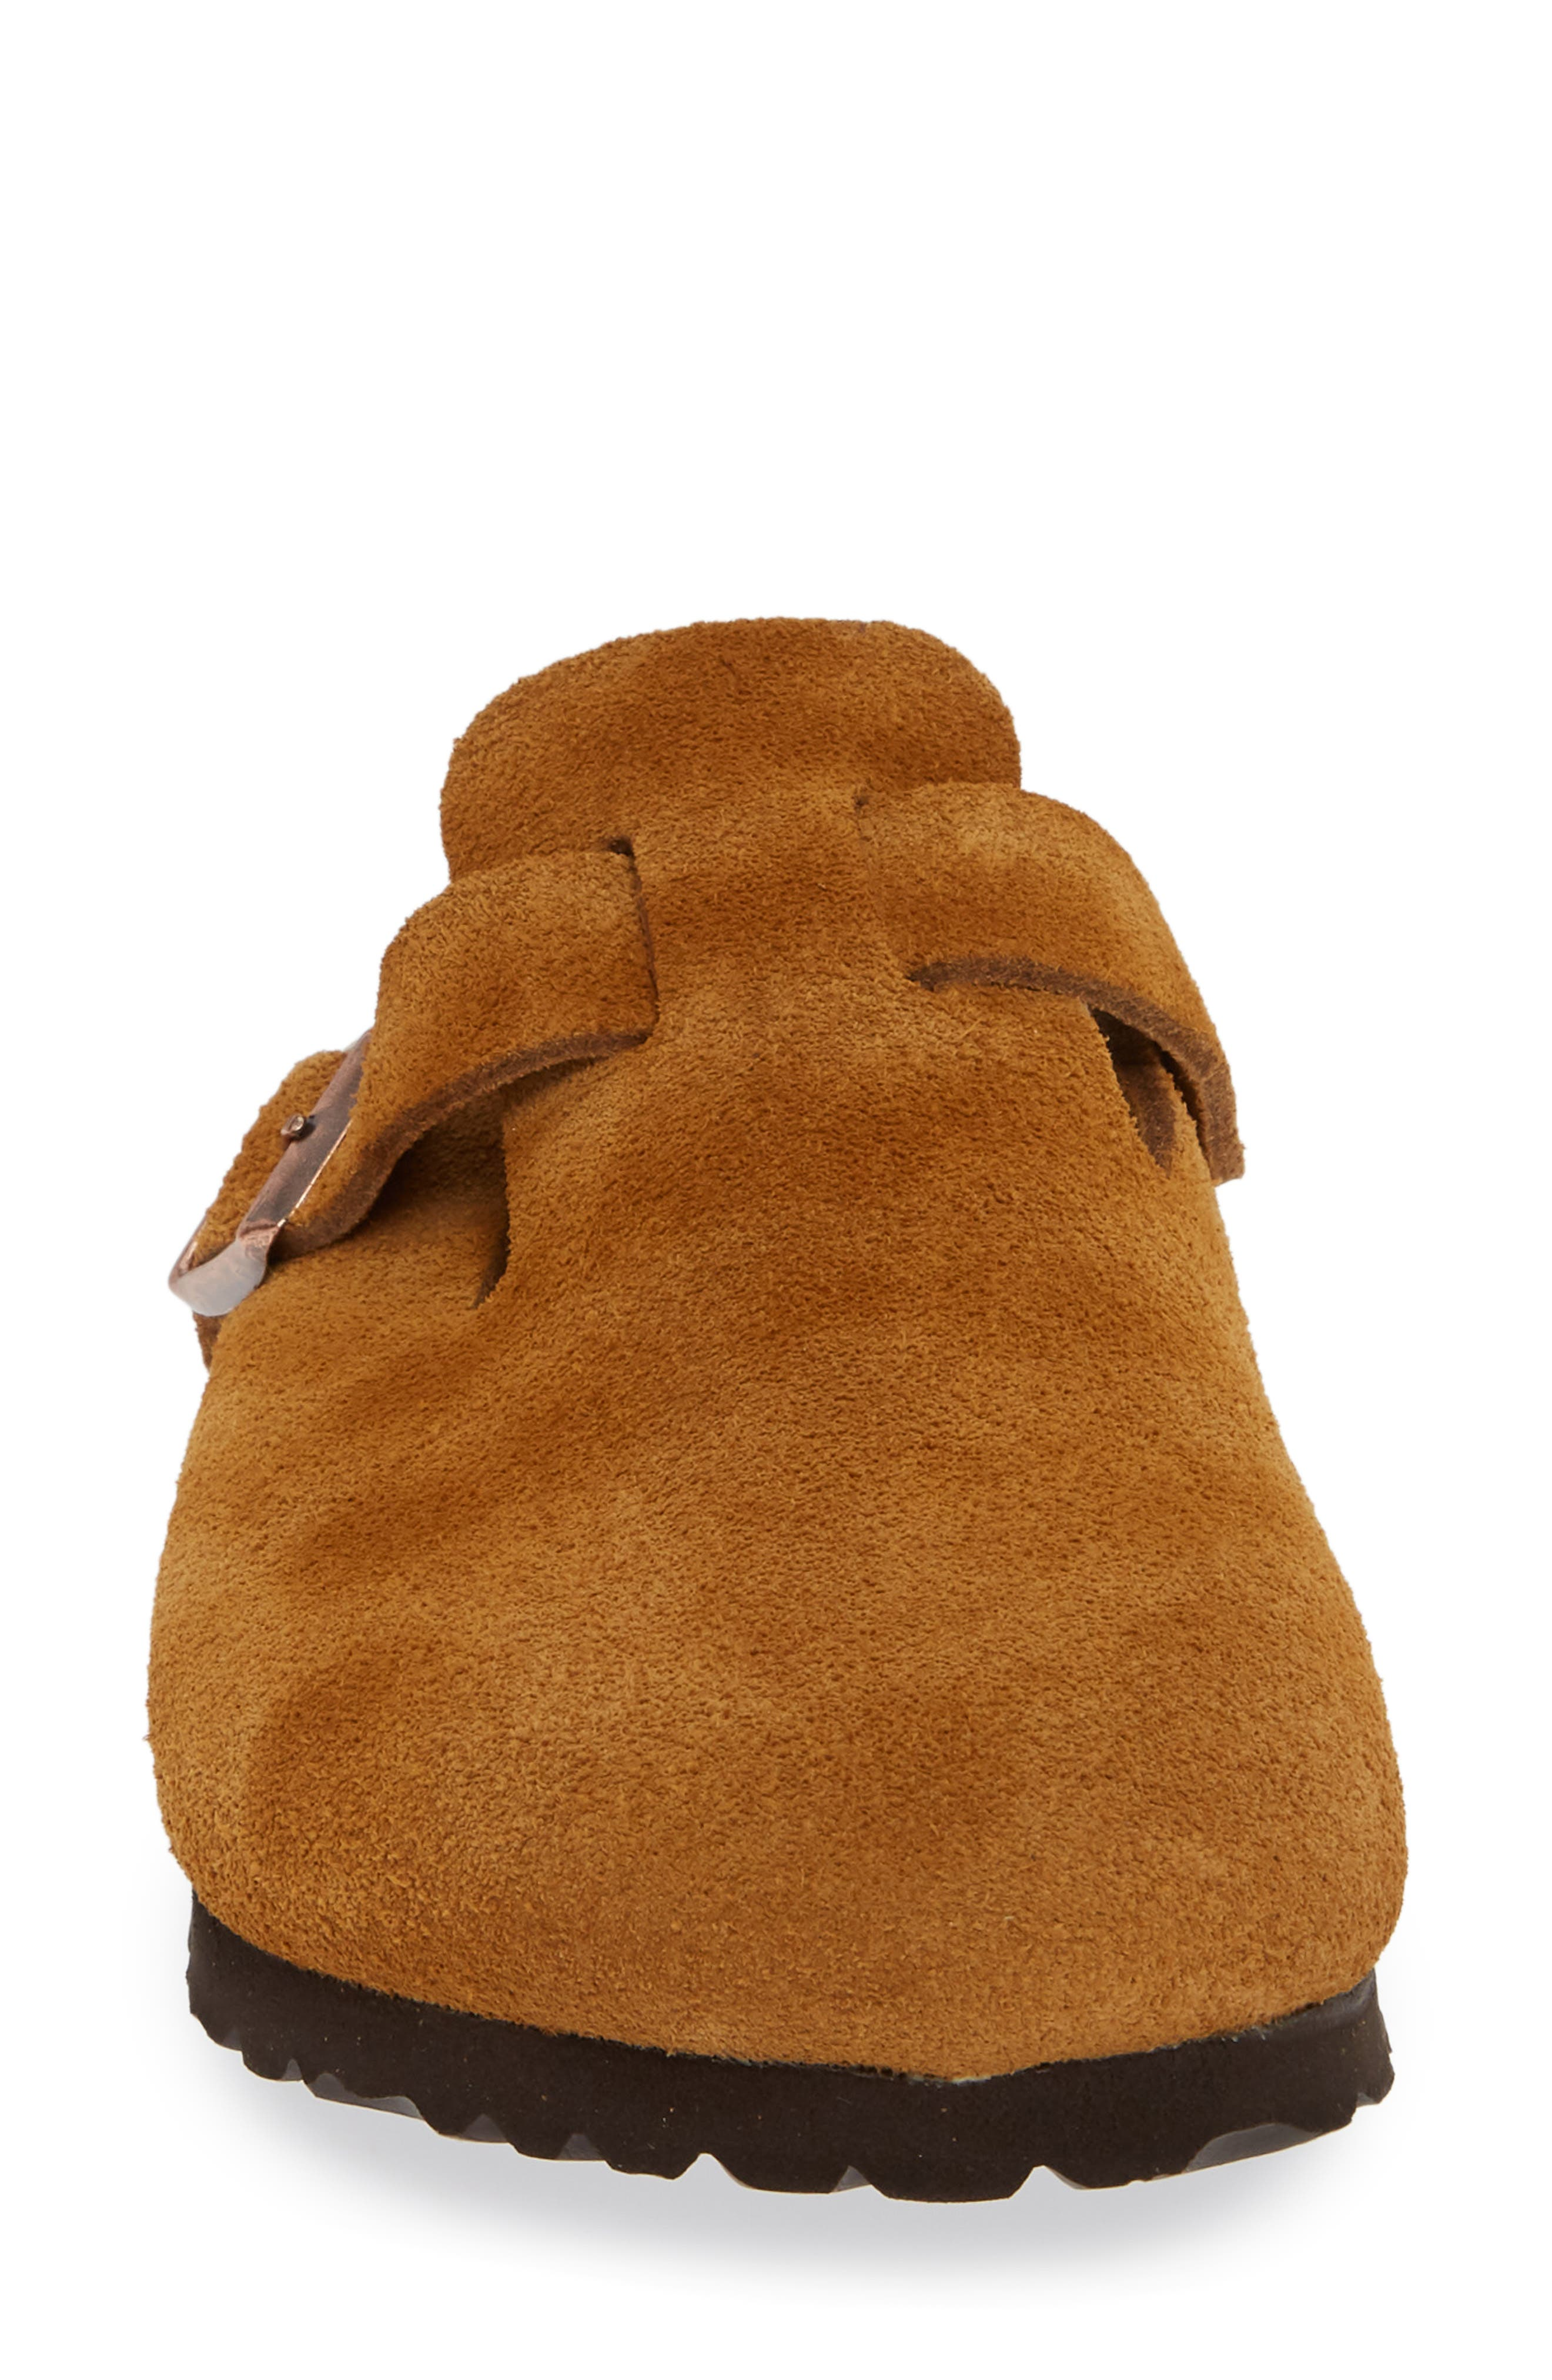 'Boston' Soft Footbed Clog,                             Alternate thumbnail 4, color,                             MINK SUEDE